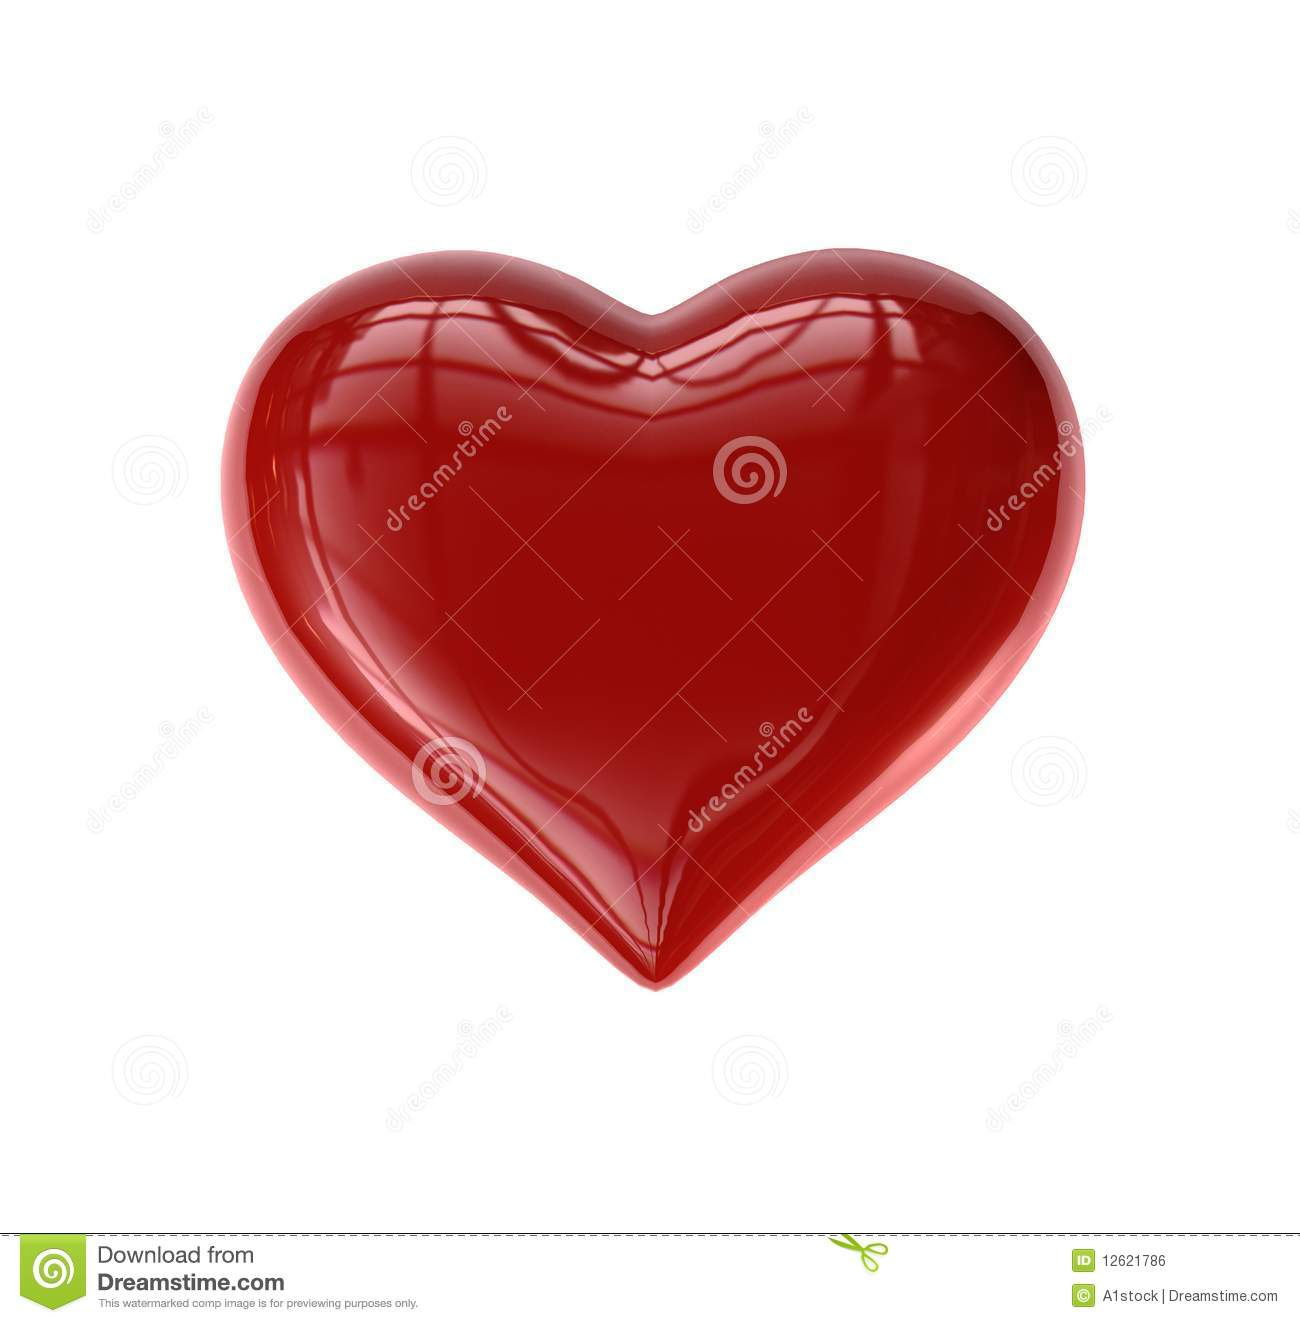 south heart single men If you are a single mother or a mother who co-parents and are looking for love while trying to balance dating as a single mom south heart younger men: new.